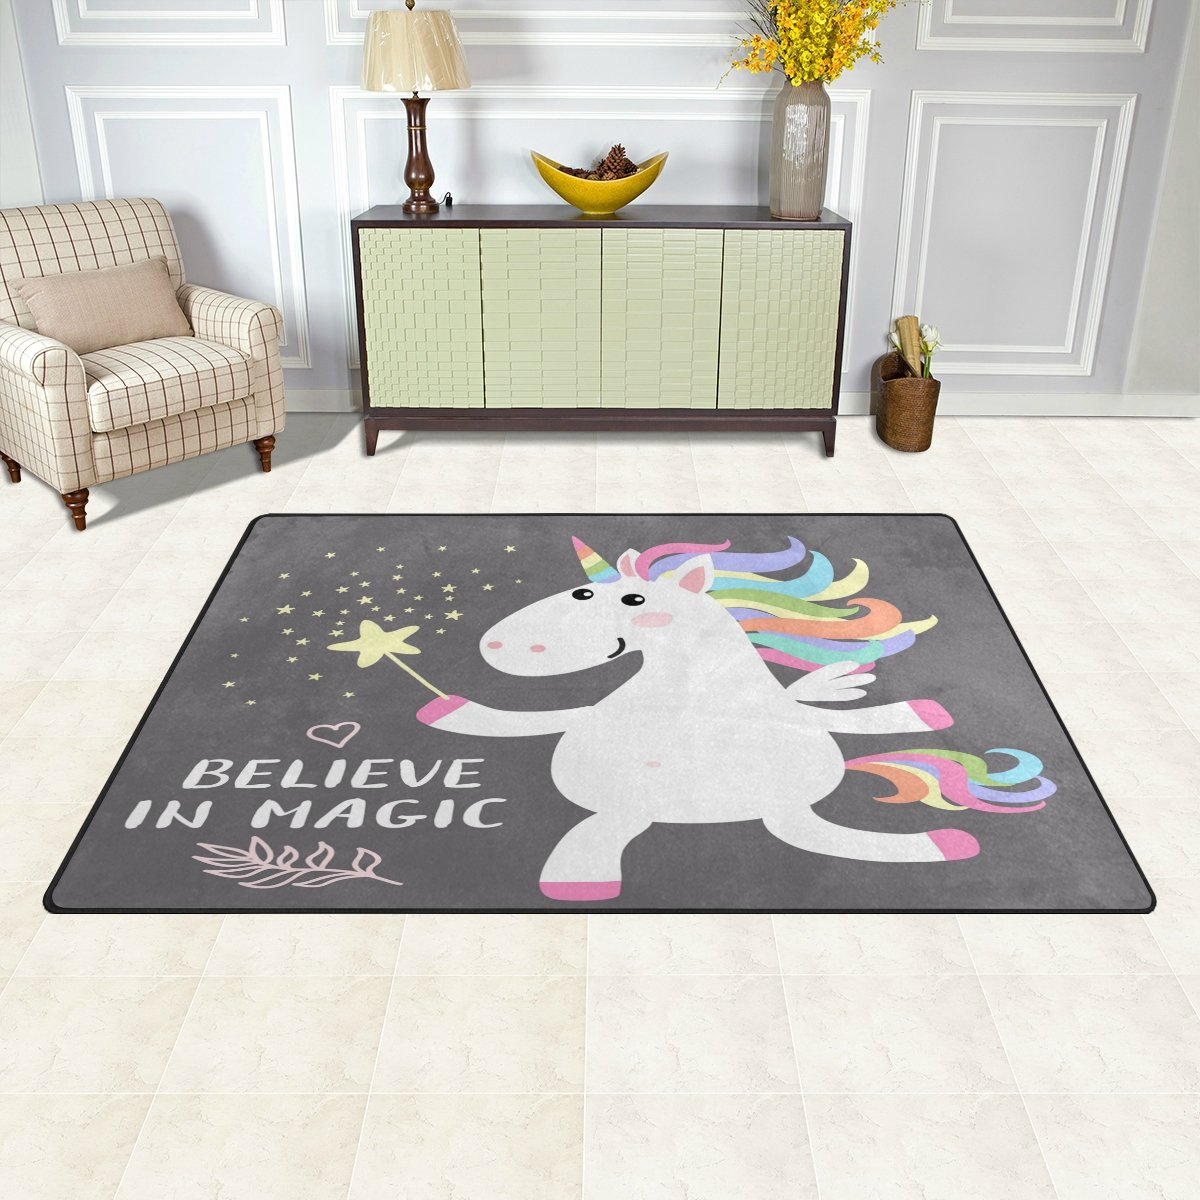 WOZO Cute Magical White Unicorn Star Area Rug Rugs Non-Slip Floor Mat Doormats Living Room Bedroom 31 x 20 inches